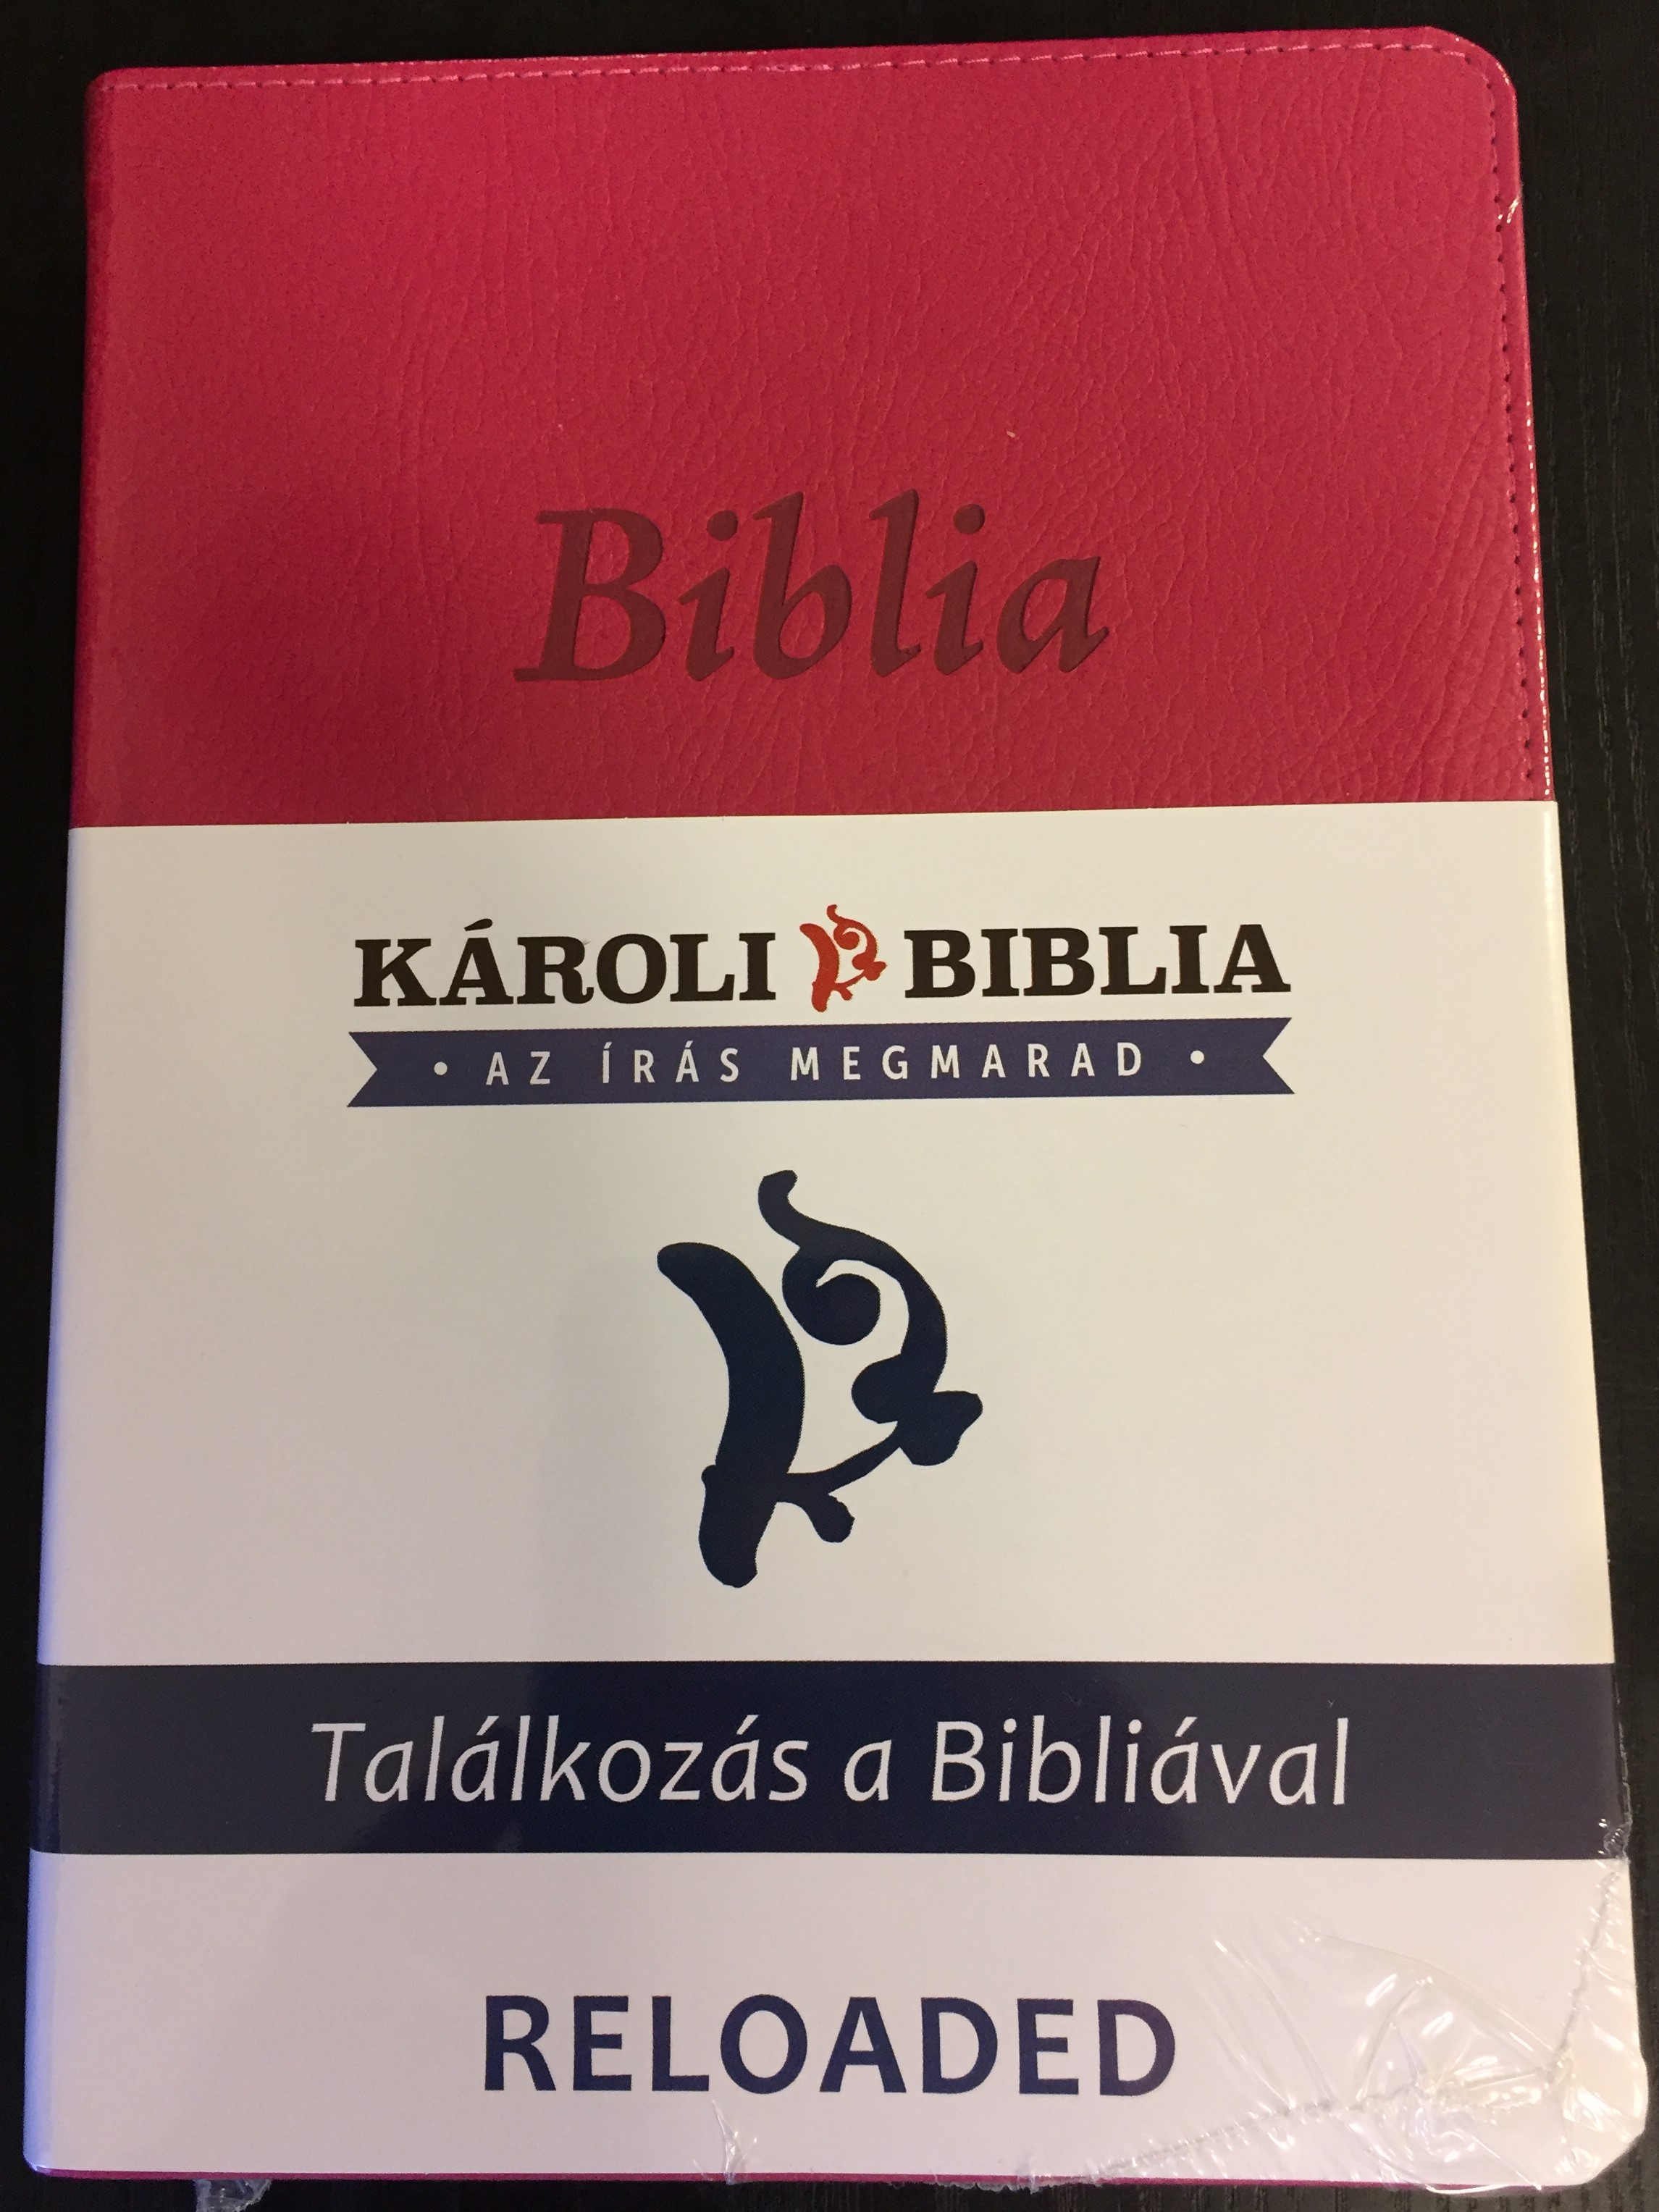 hungarian-k-roli-bible-reloaded-pu-imitation-leather-cover-cyclamen-magyar-biblia-revide-lt-k-roli-k-z-pm-ret-cikl-men-m-b-r-words-of-god-and-words-of-jesus-in-red-1-.jpg